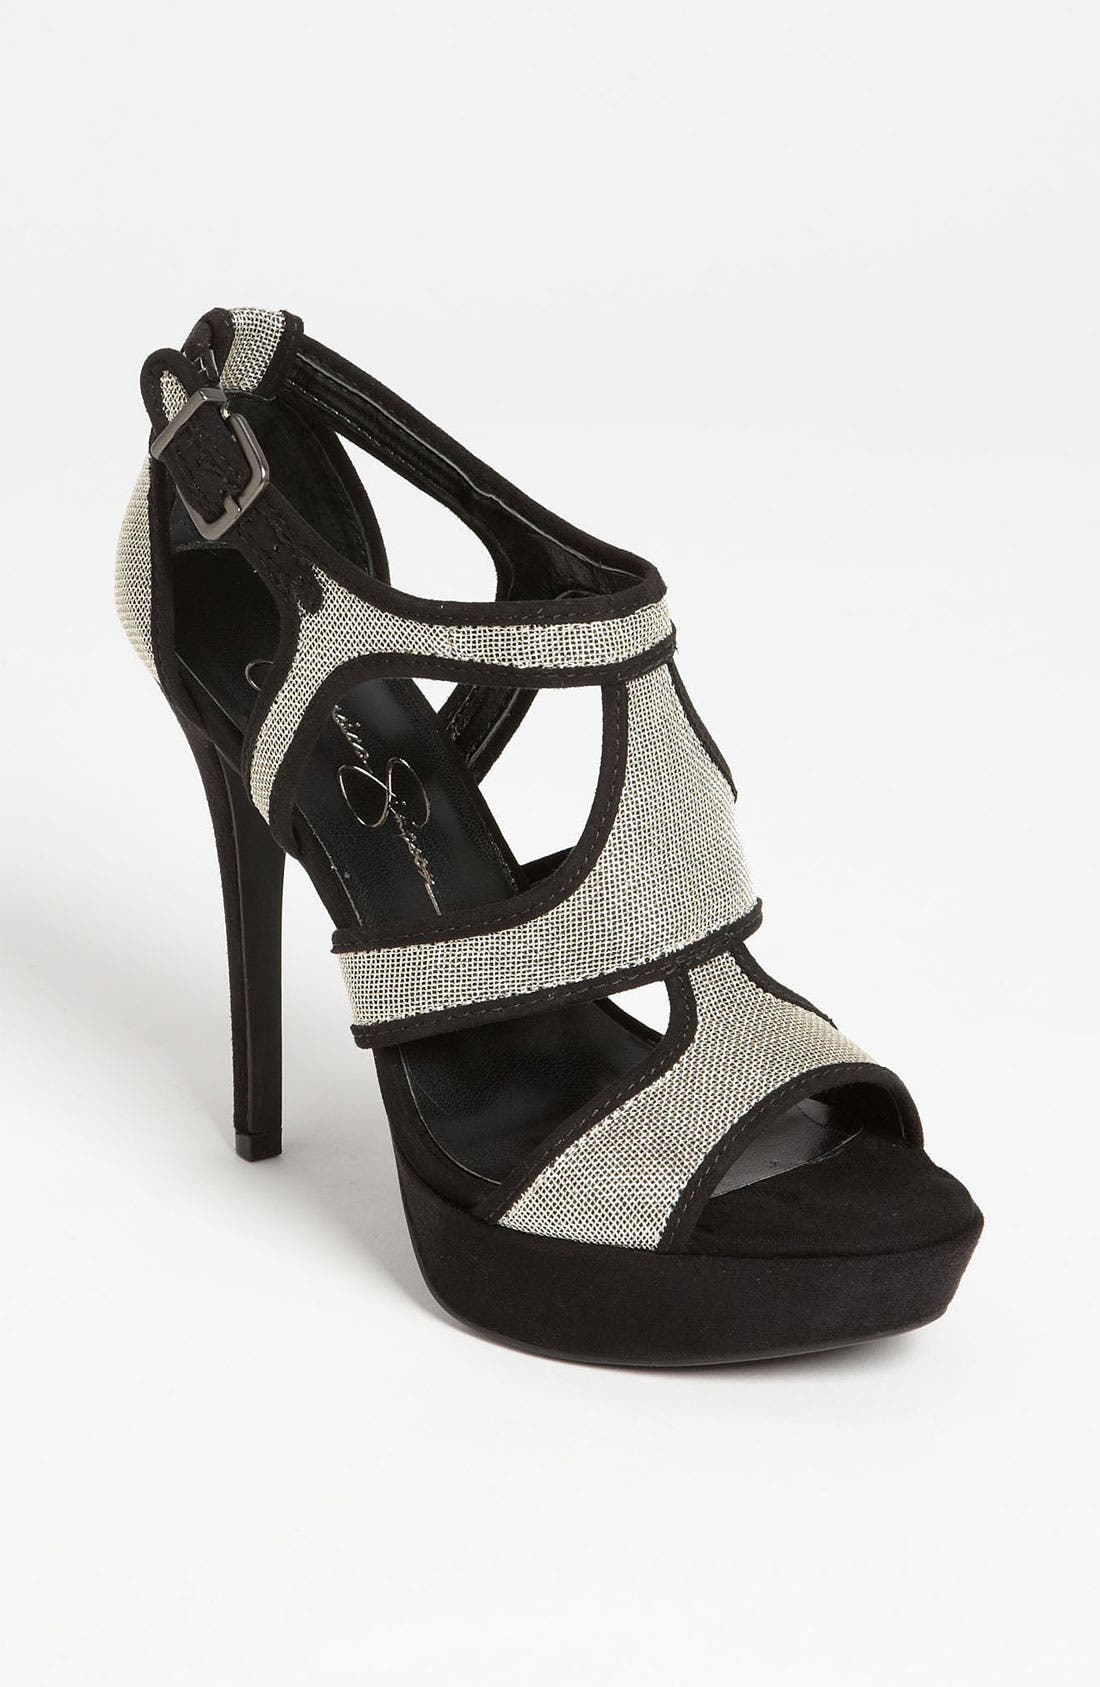 Alternate Image 1 Selected - Jessica Simpson 'Bruno' Sandal